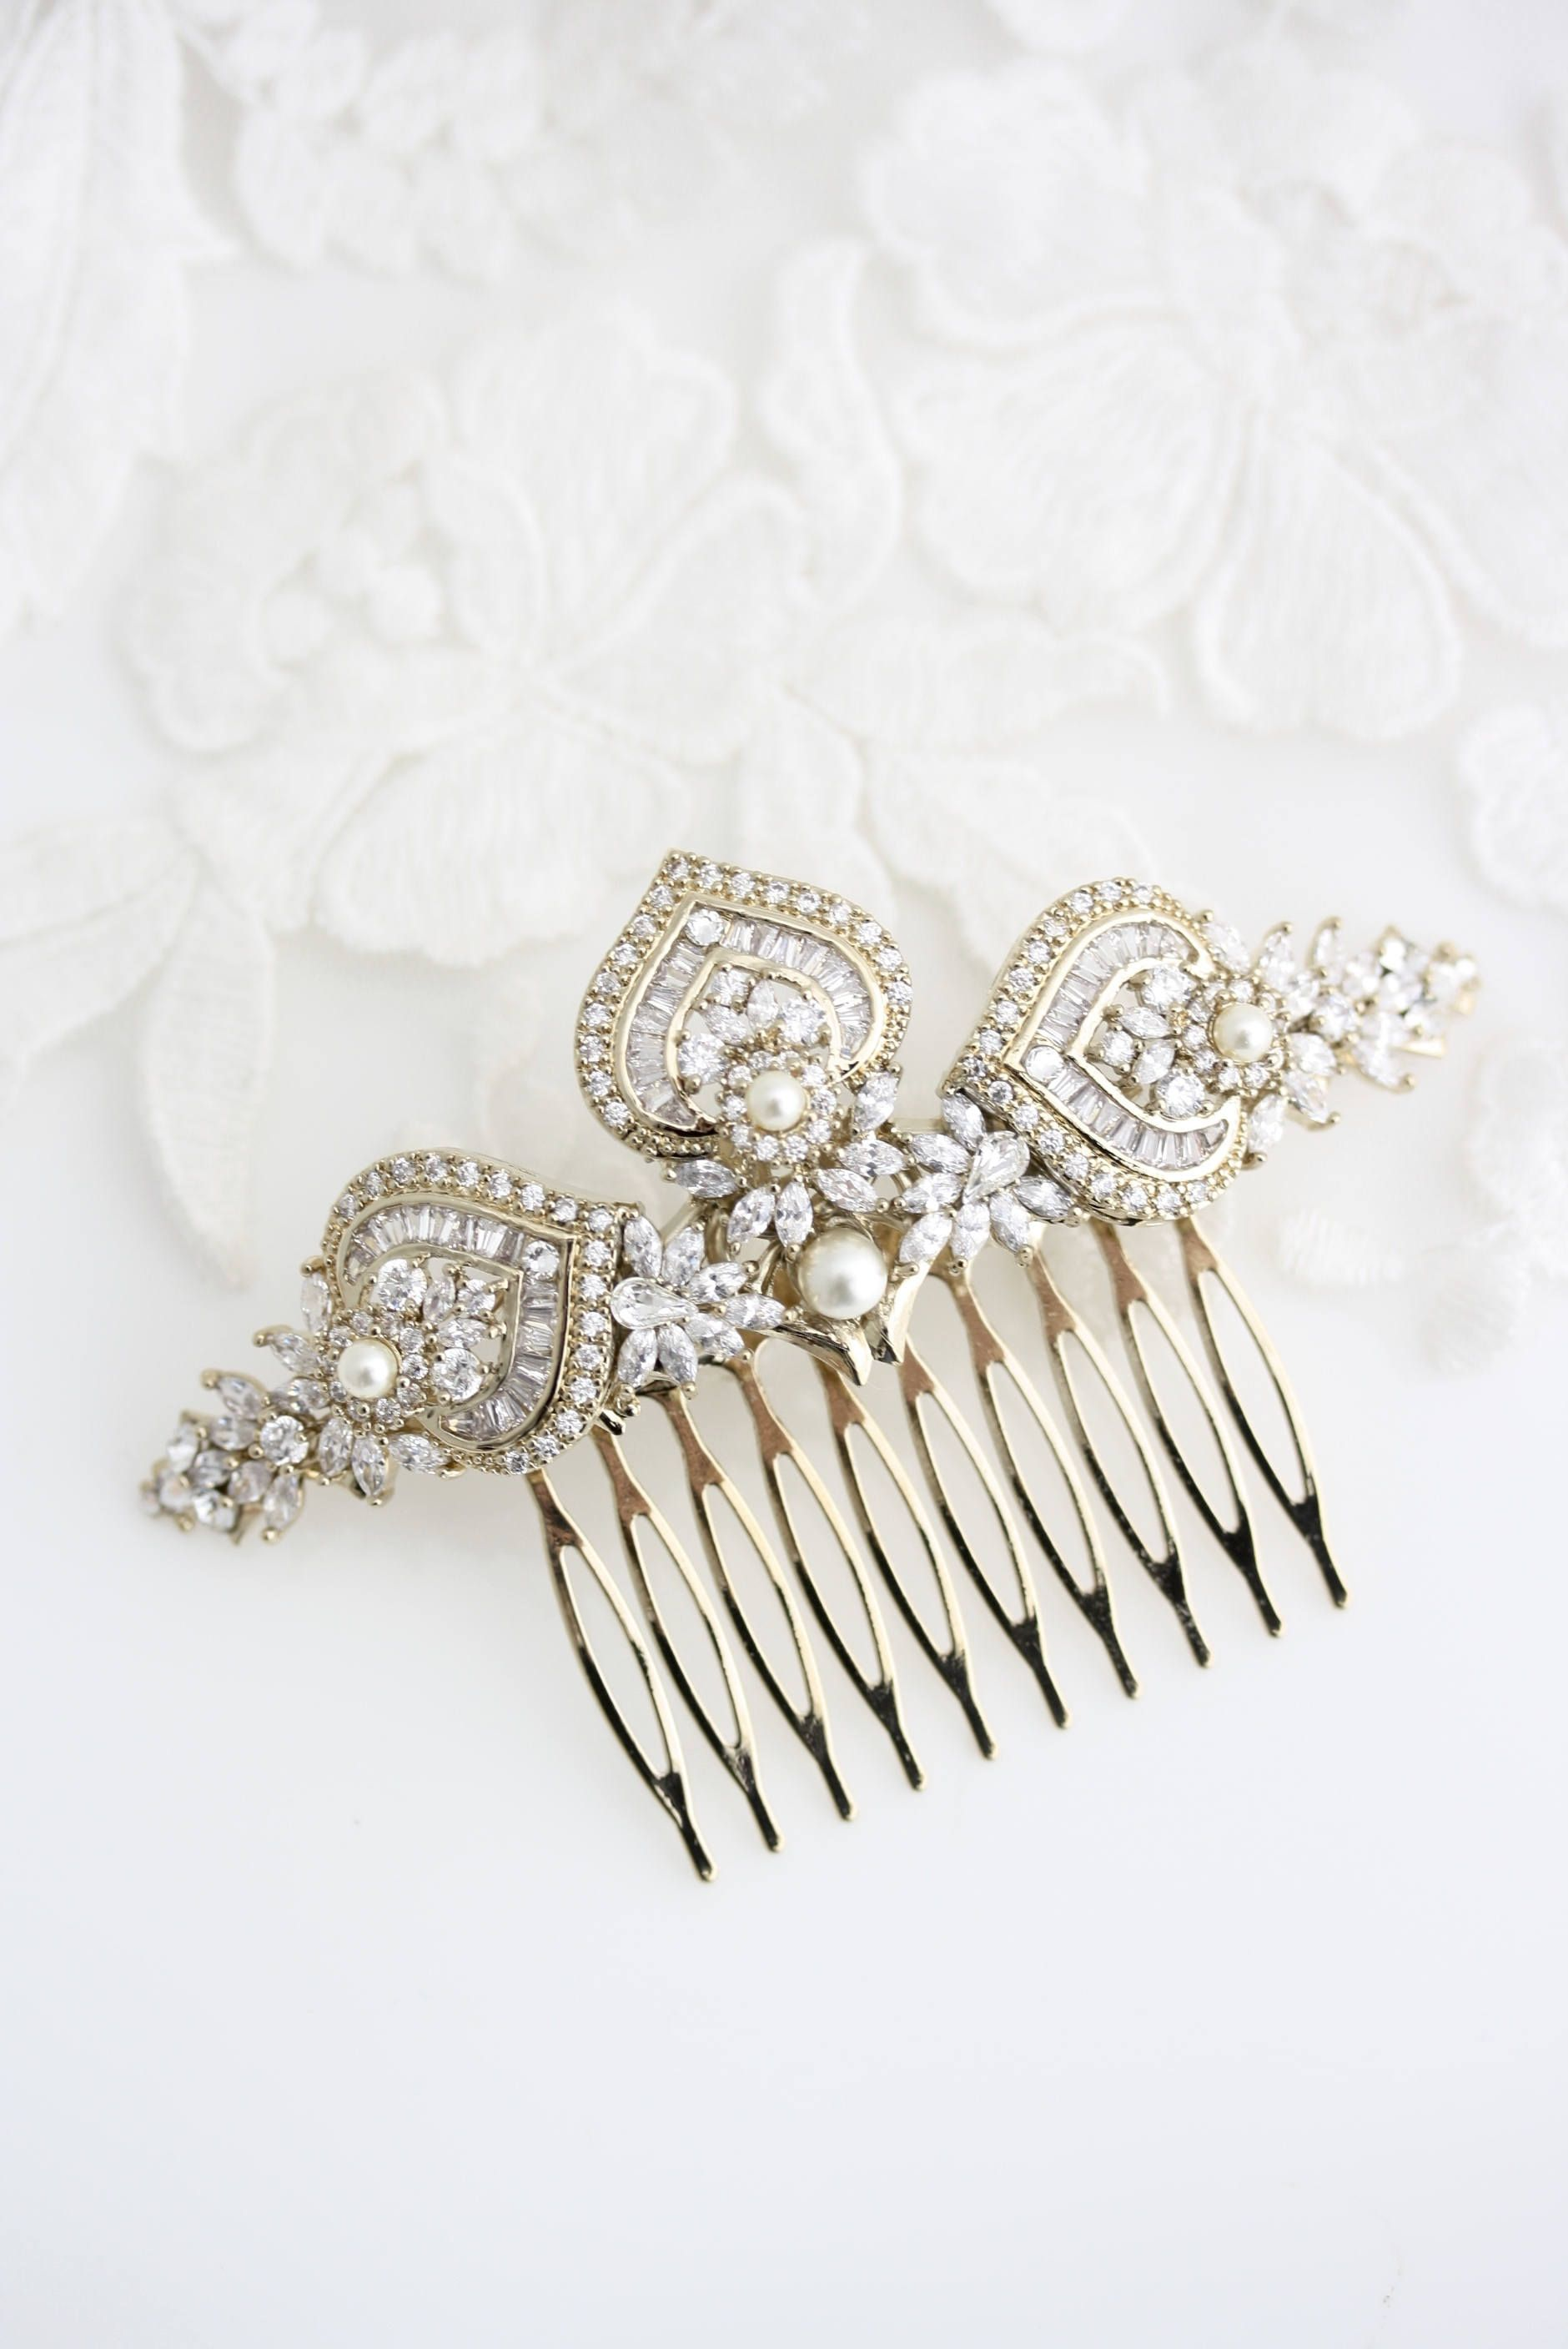 Gold Bridal Hair Comb Gold Wedding Headpiece Crystal Hair Comb Rose